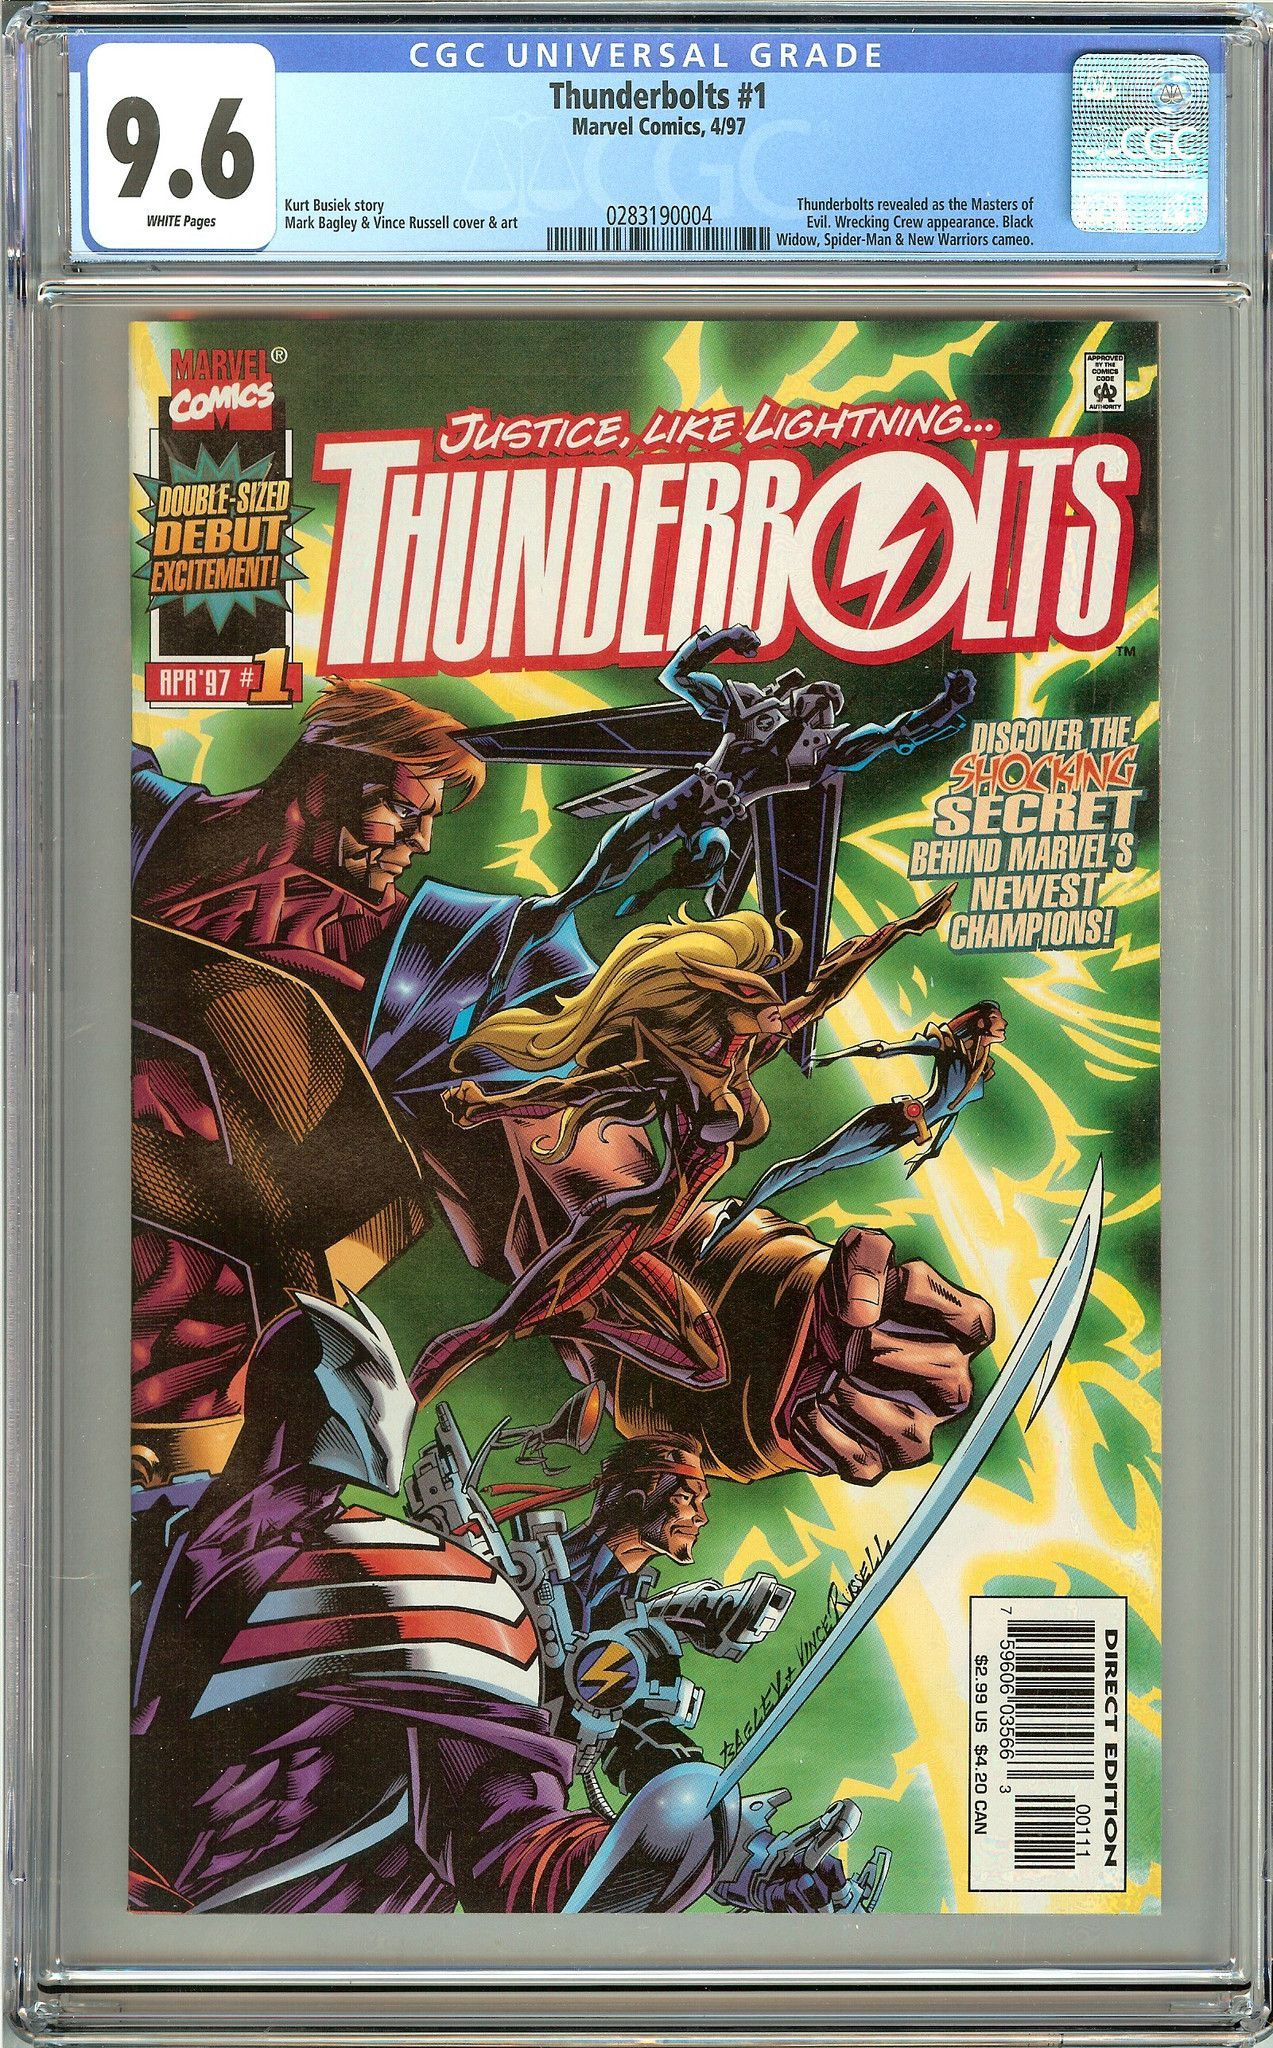 Thunderbolts #1 (1997) CGC 9.6 White Pages 0283190004